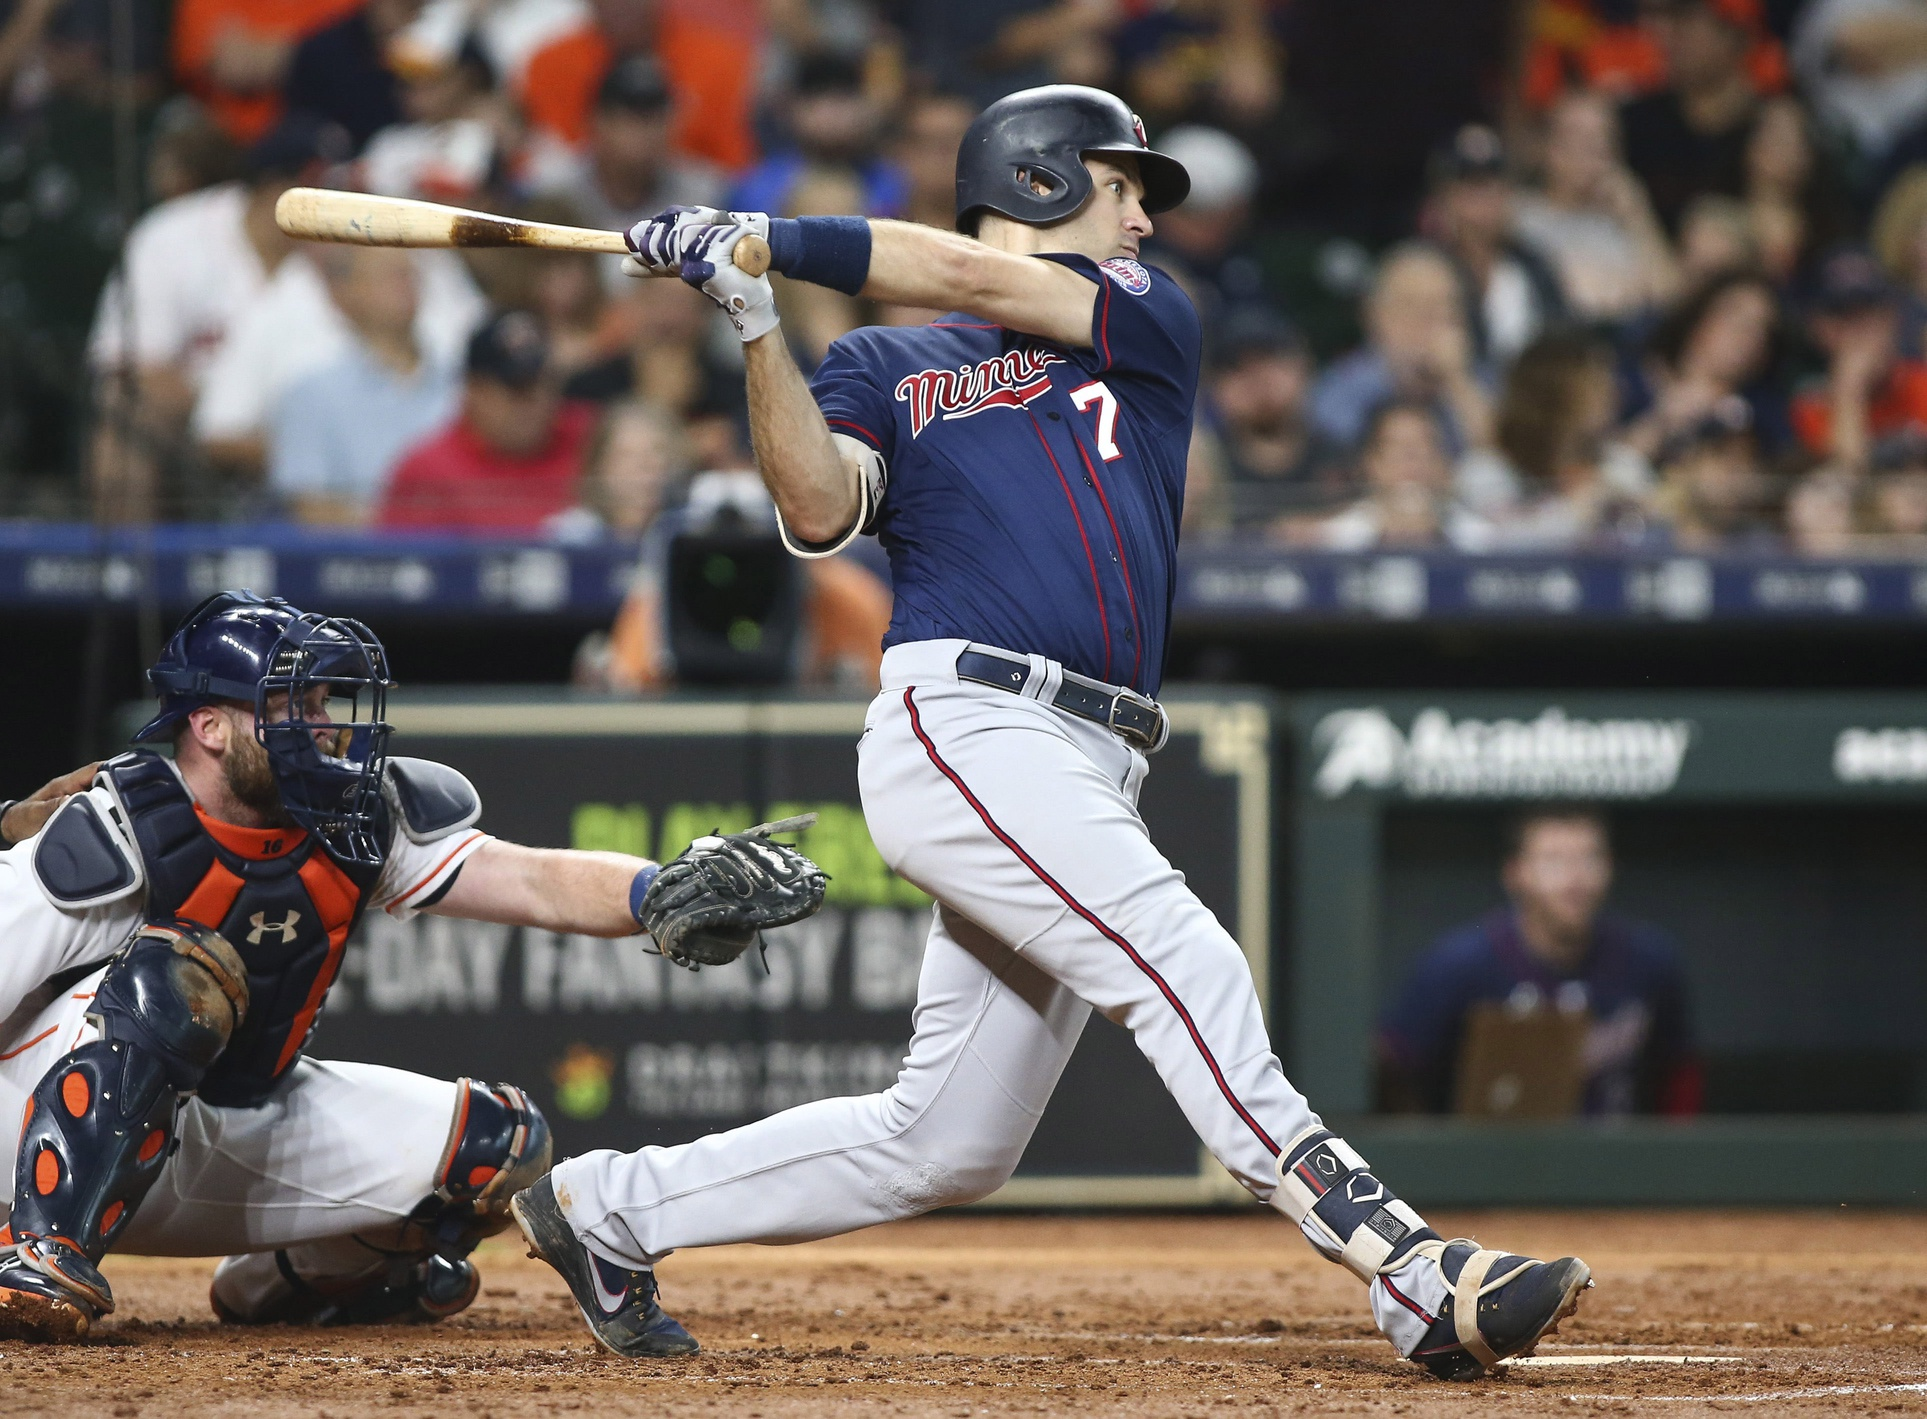 Sep 3, 2018; Houston, TX, USA; Minnesota Twins first baseman Joe Mauer (7) hits a single during the third inning against the Houston Astros at Minute Maid Park. Mandatory Credit: Troy Taormina-USA TODAY Sports